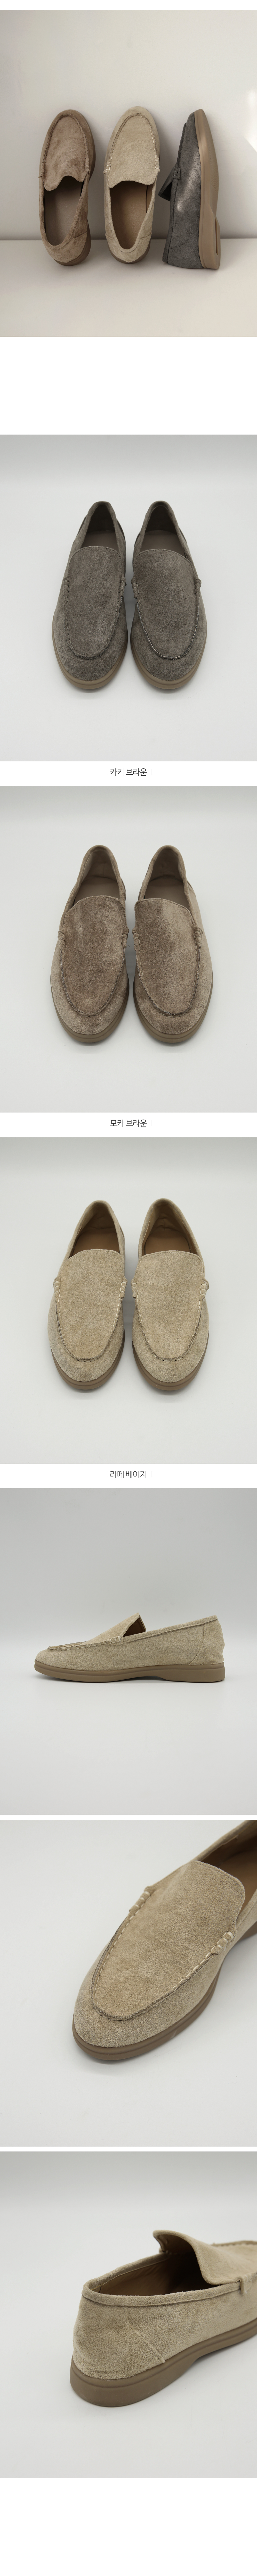 Mute suede loafers